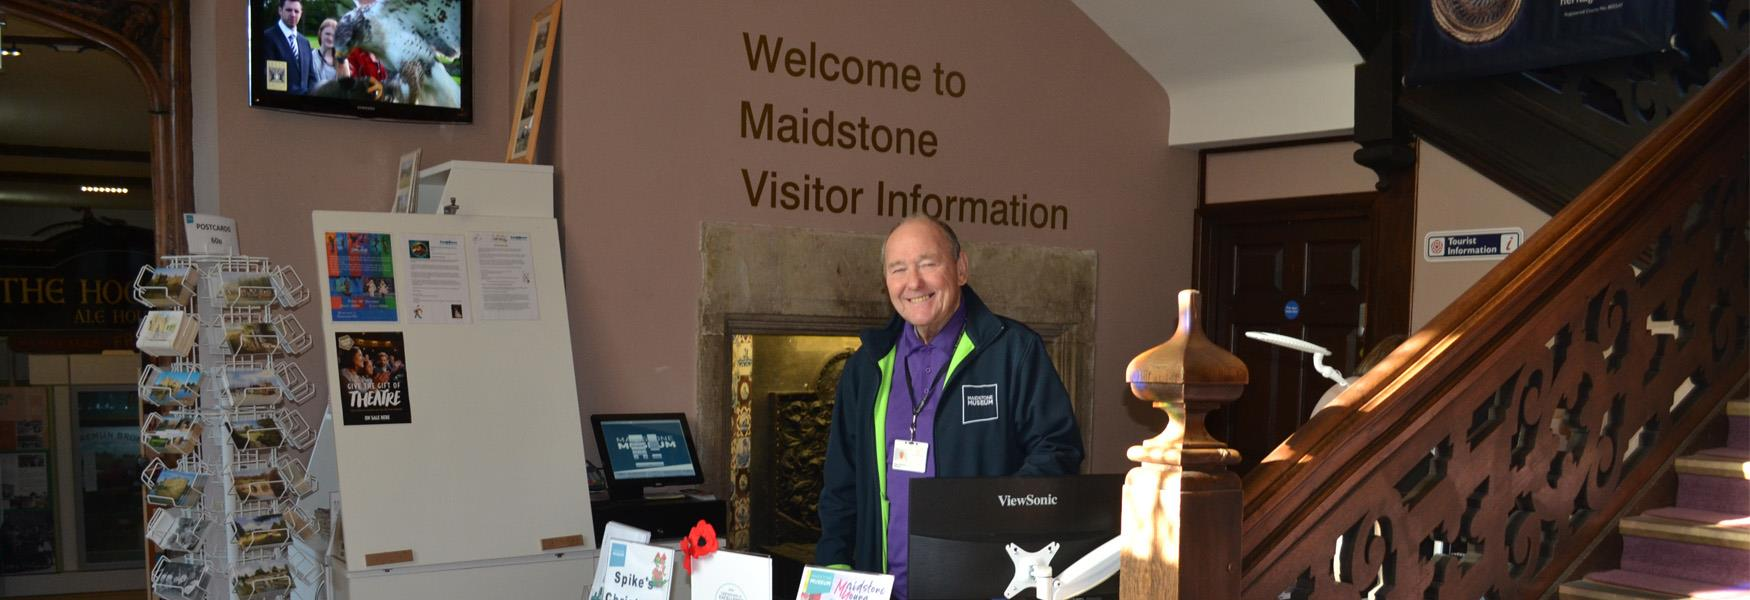 Here to help - Maidstone Tourist Information